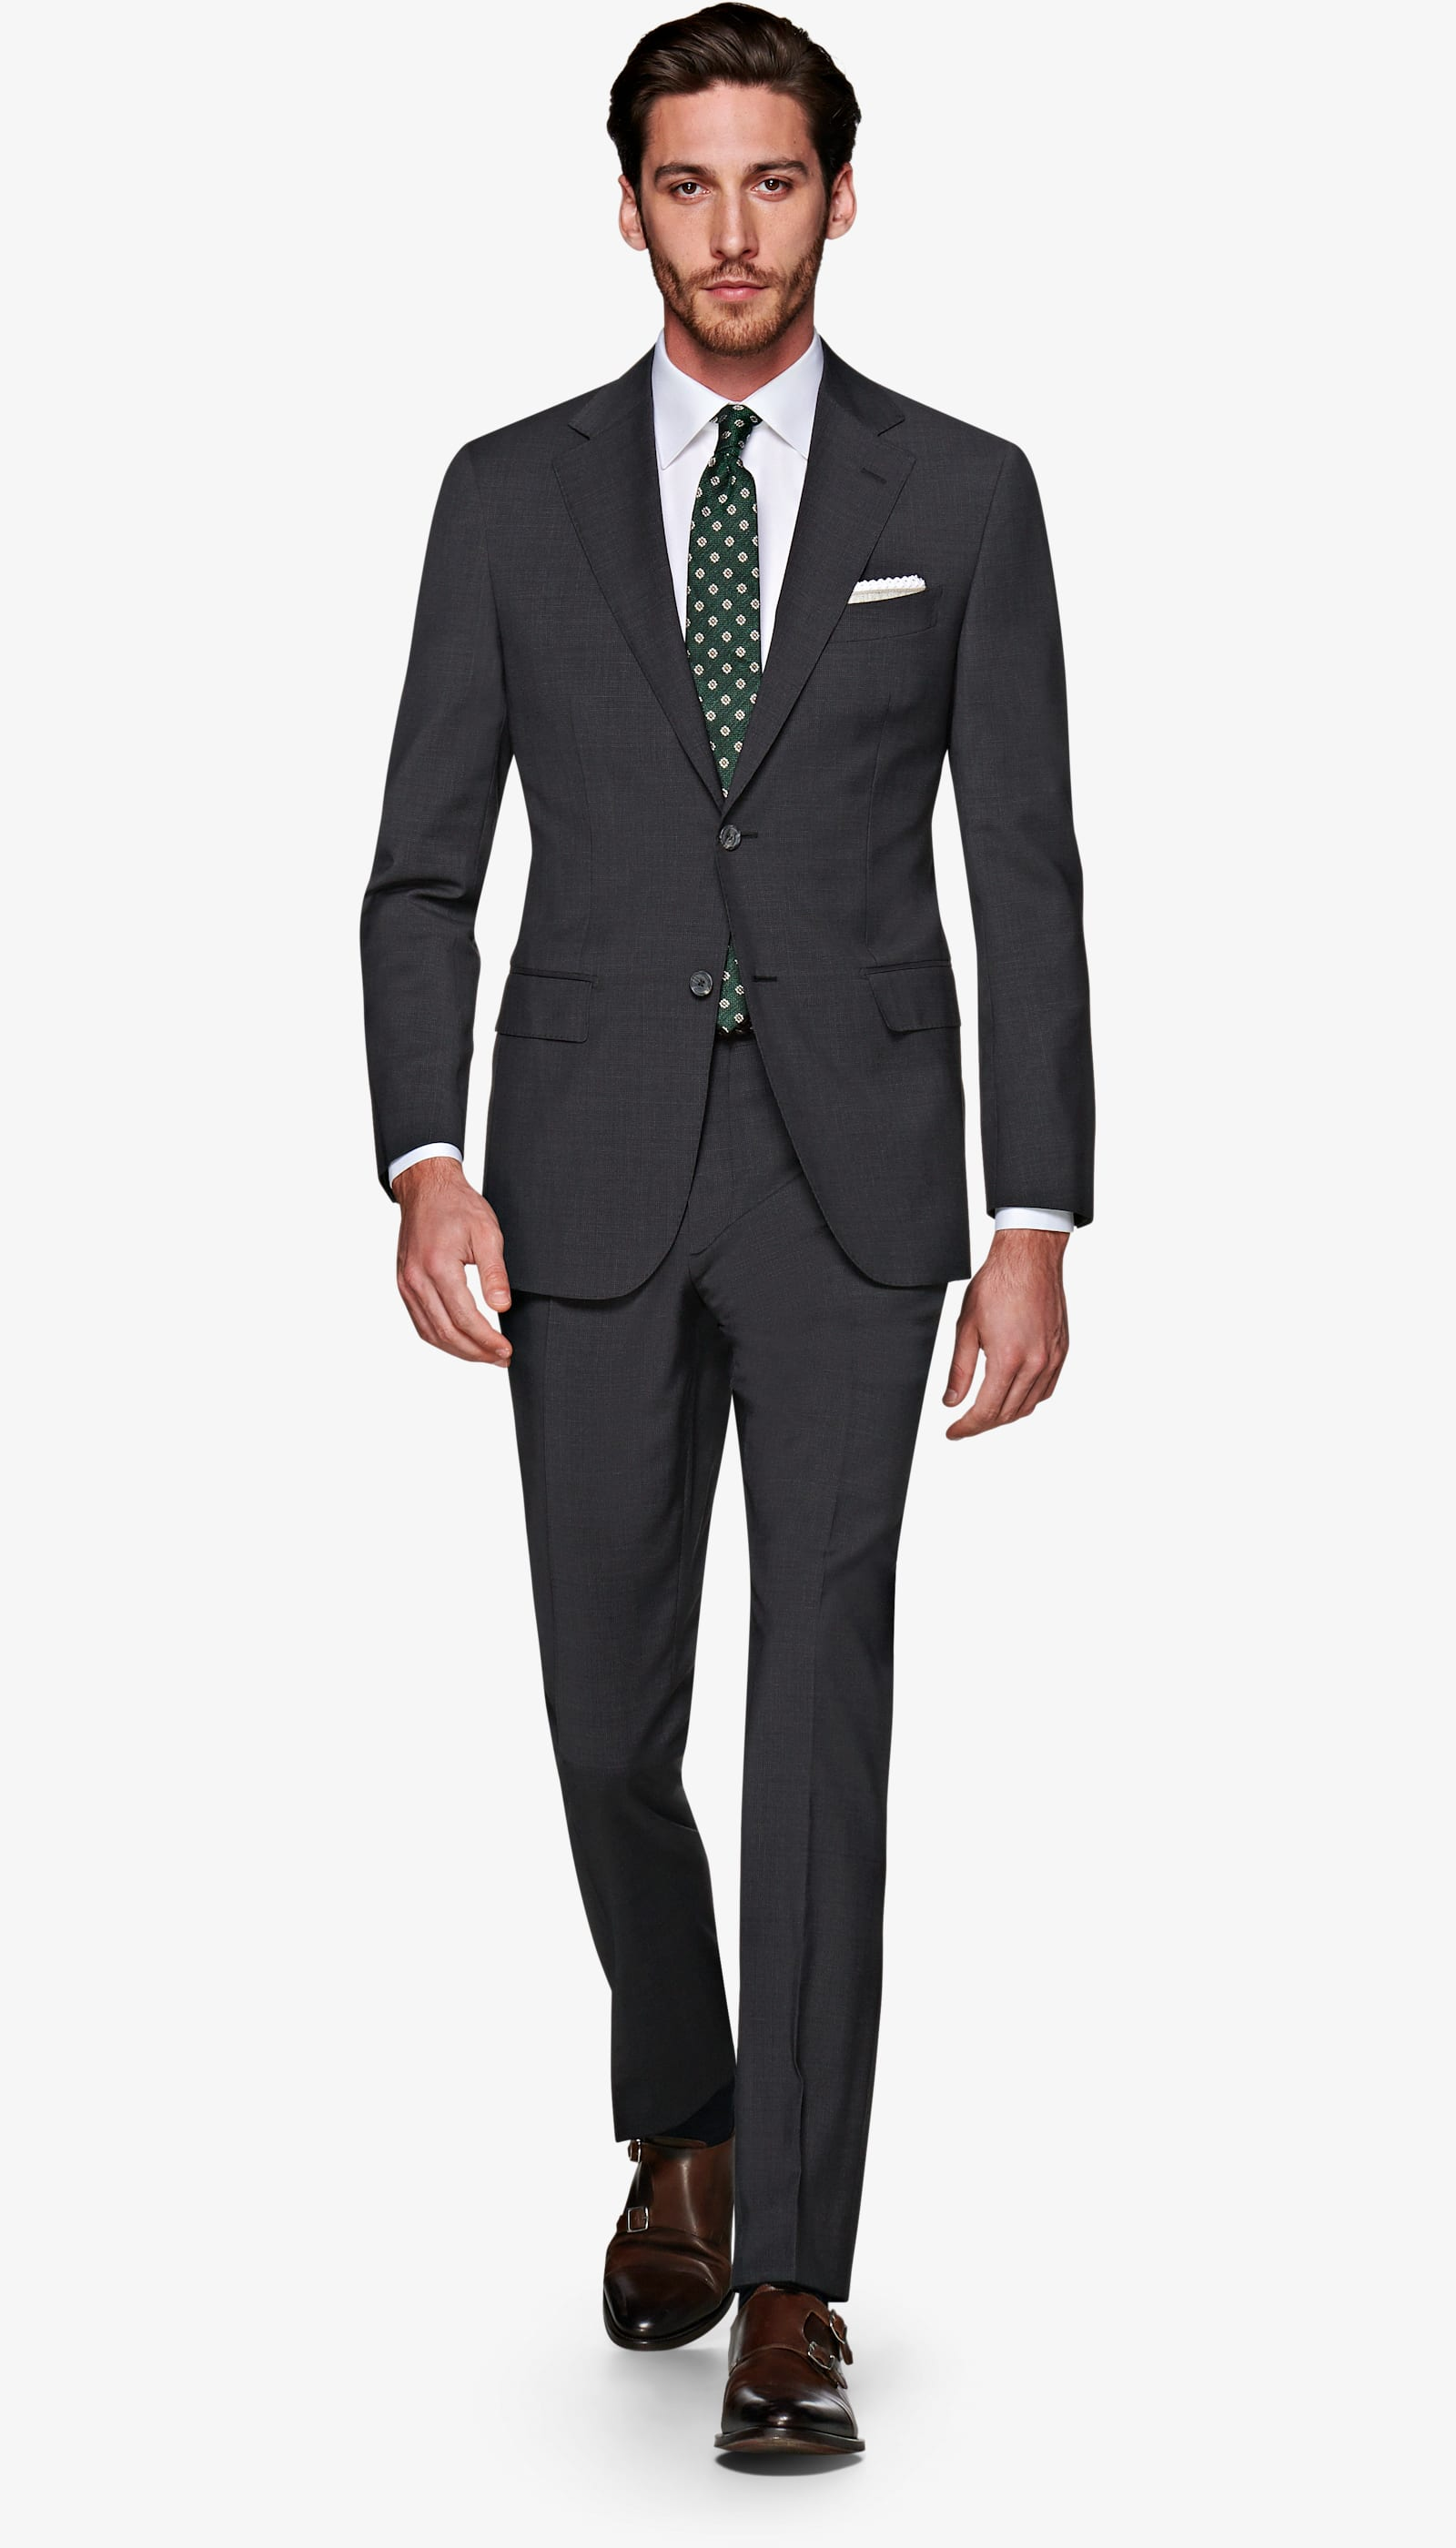 Suit Supply Dark Grey Hounds-tooth - Suit Supply give us an office standard with a bit of character in a subtle pattern. Perfect for office day-to-day